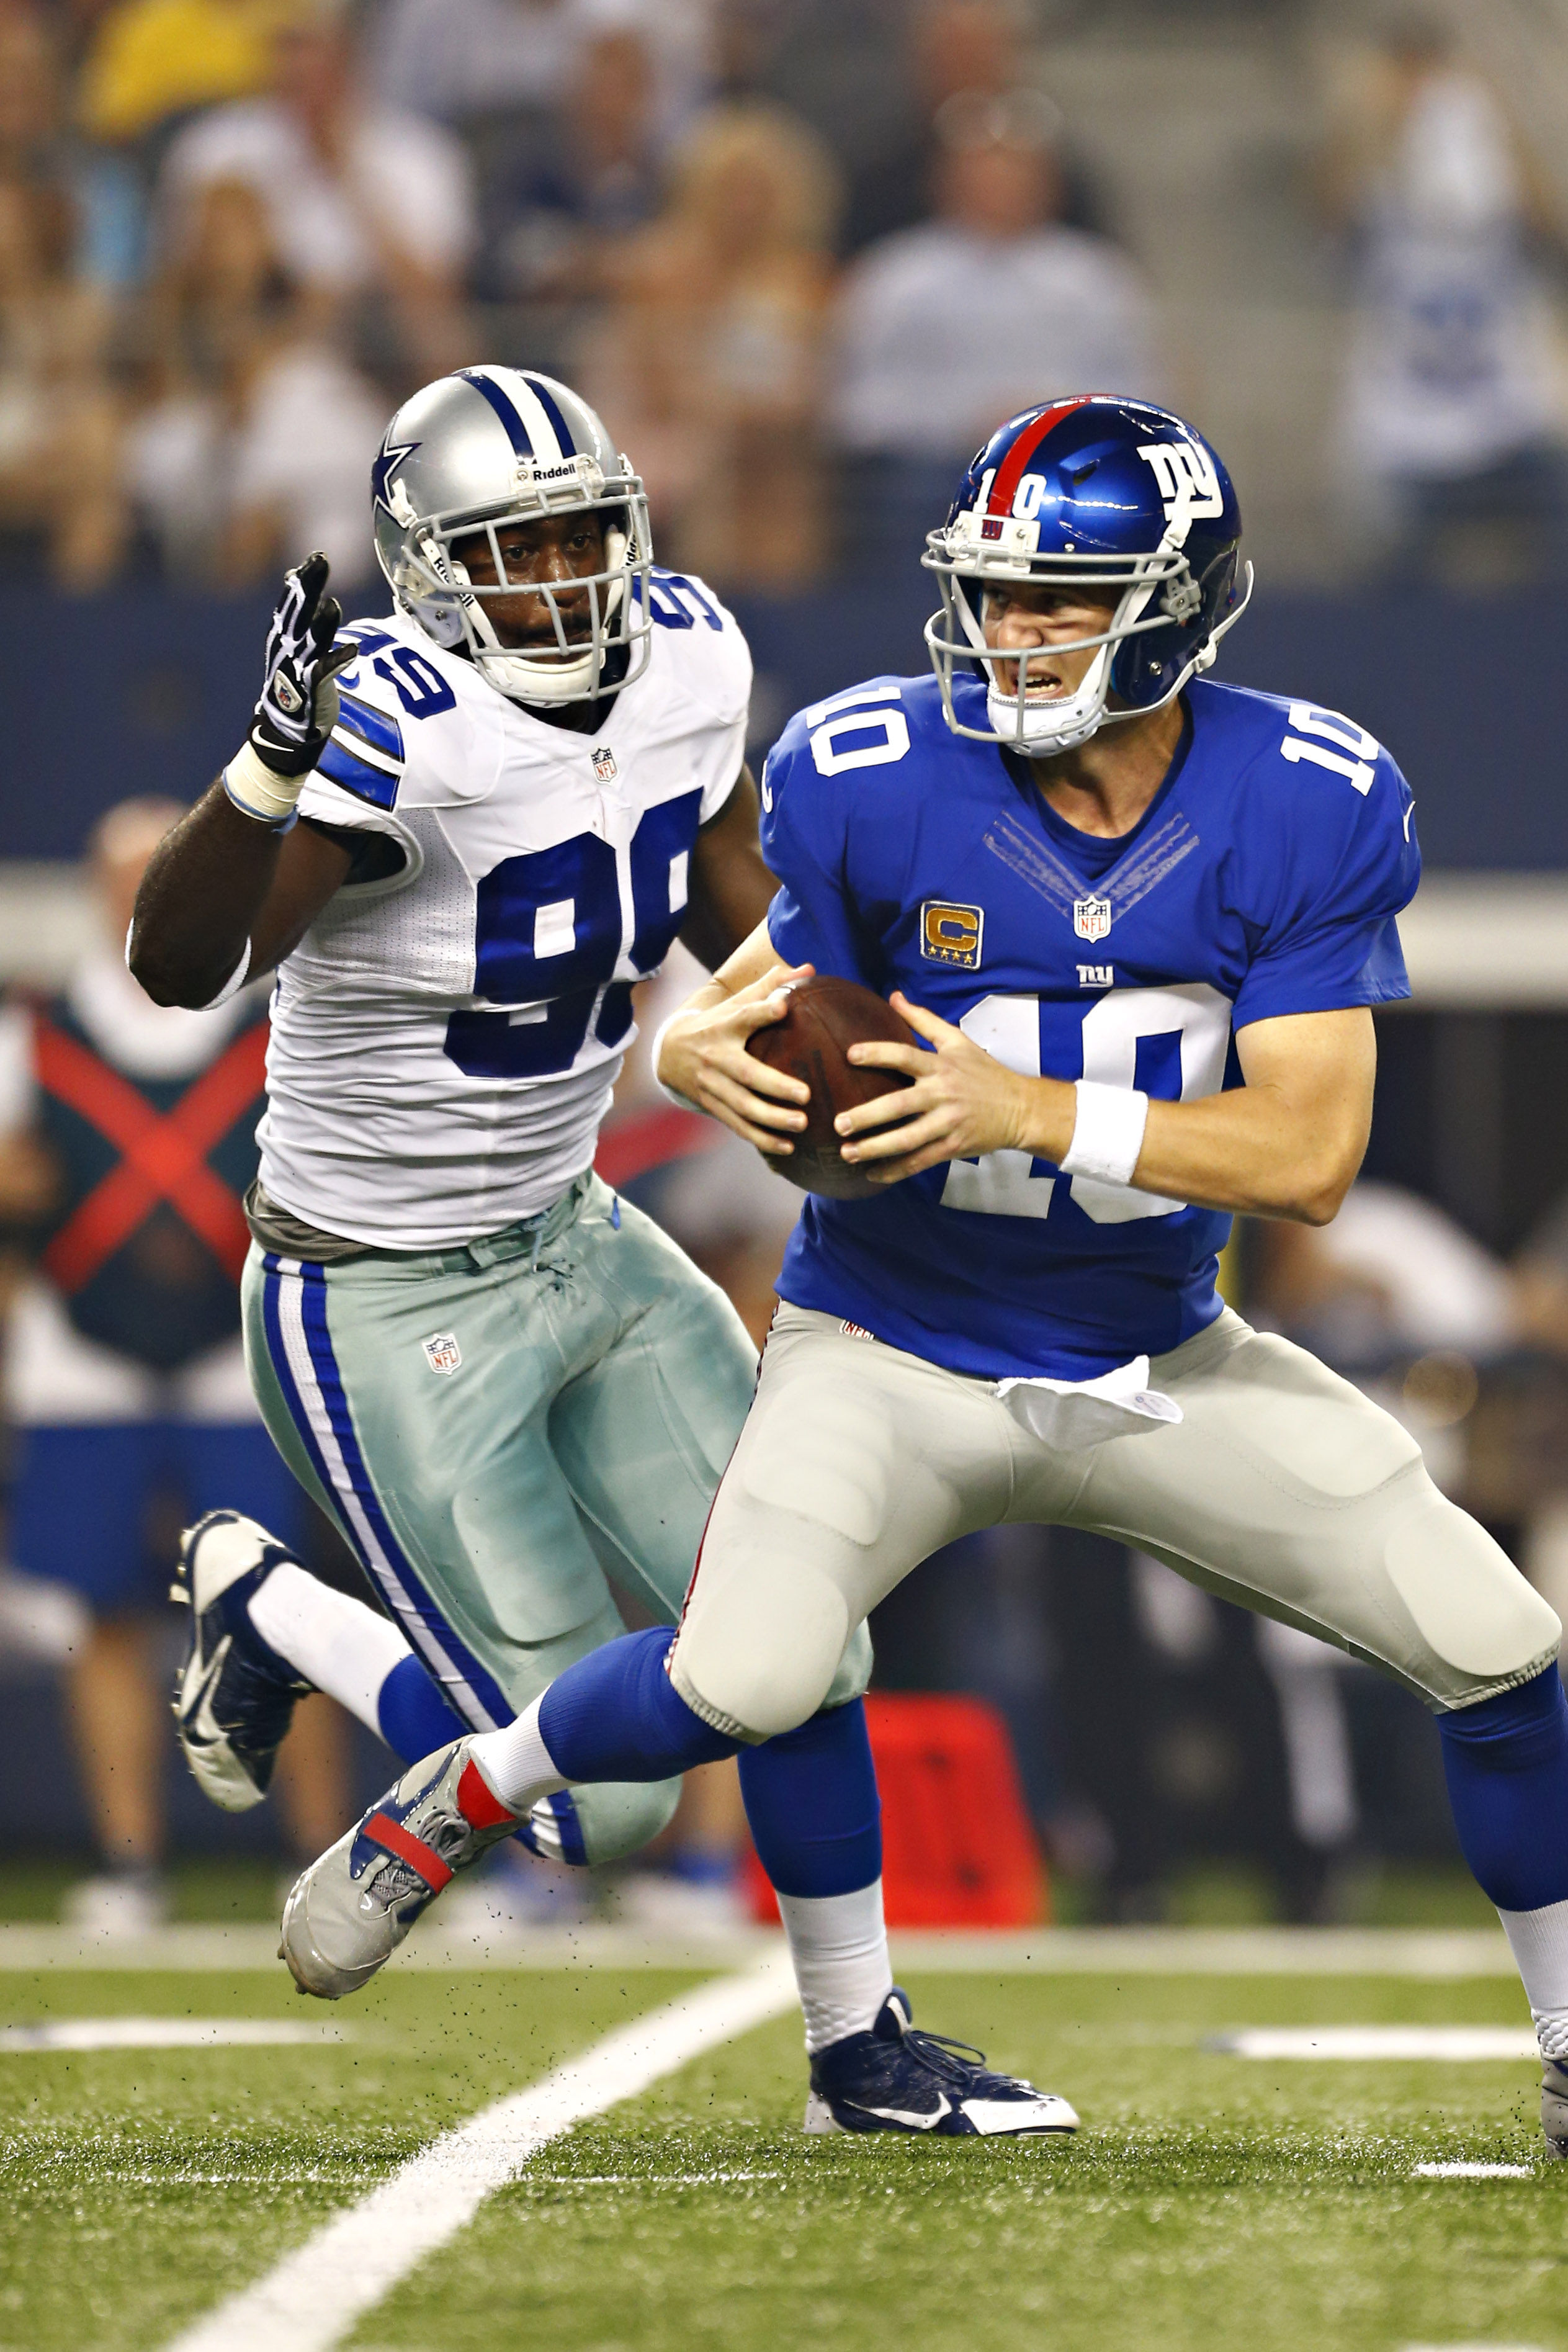 Eli Manning doesn't have to worry about being chased by George Selvie any more.